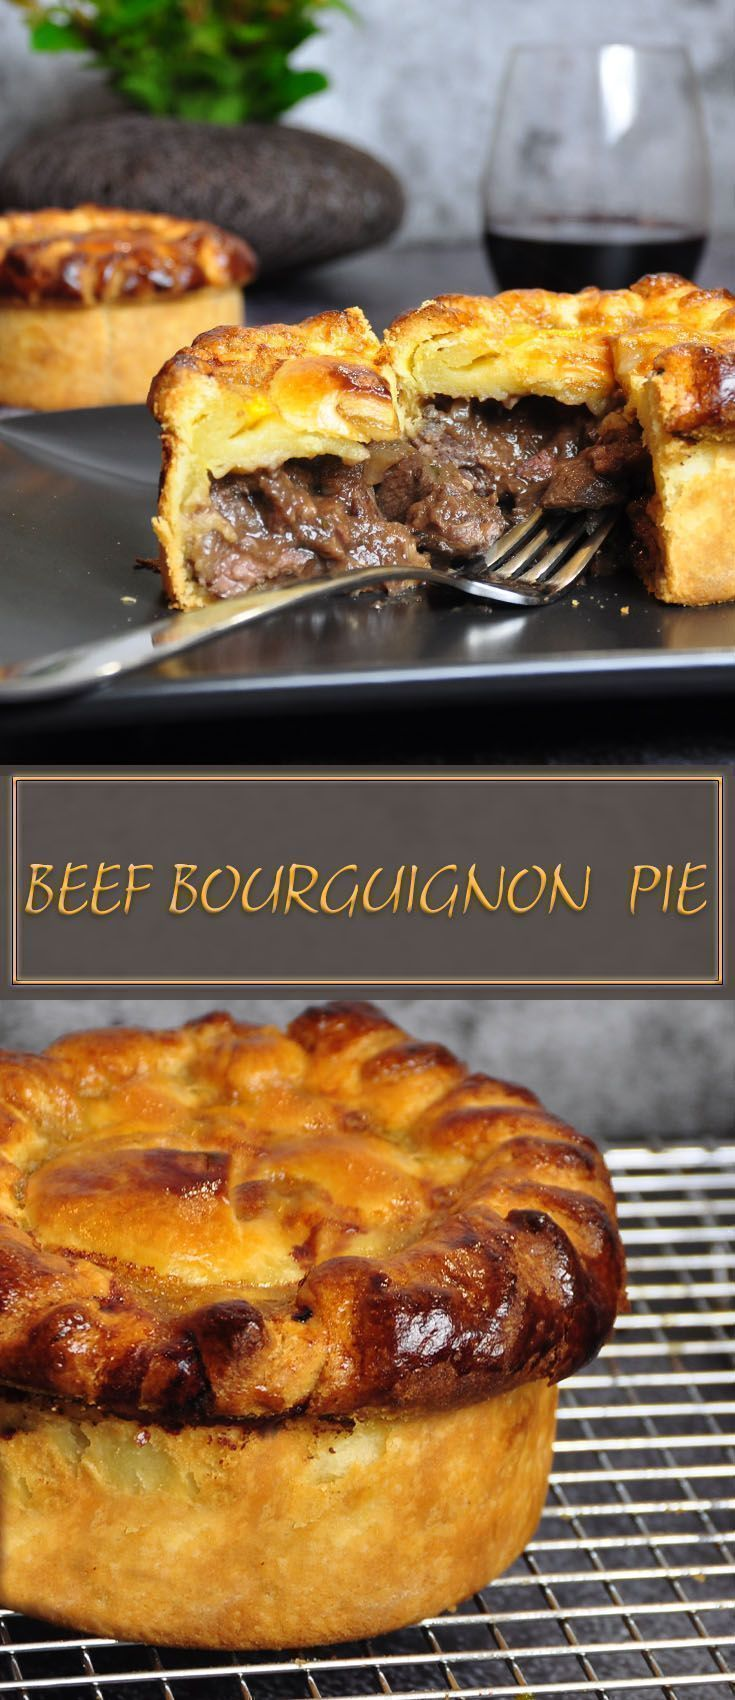 Beef Bourguignon Pie With No Fail 2 Minute Flaky Pastry Recipe Beef Bourguignon Beef Pie Recipe Savoury Baking